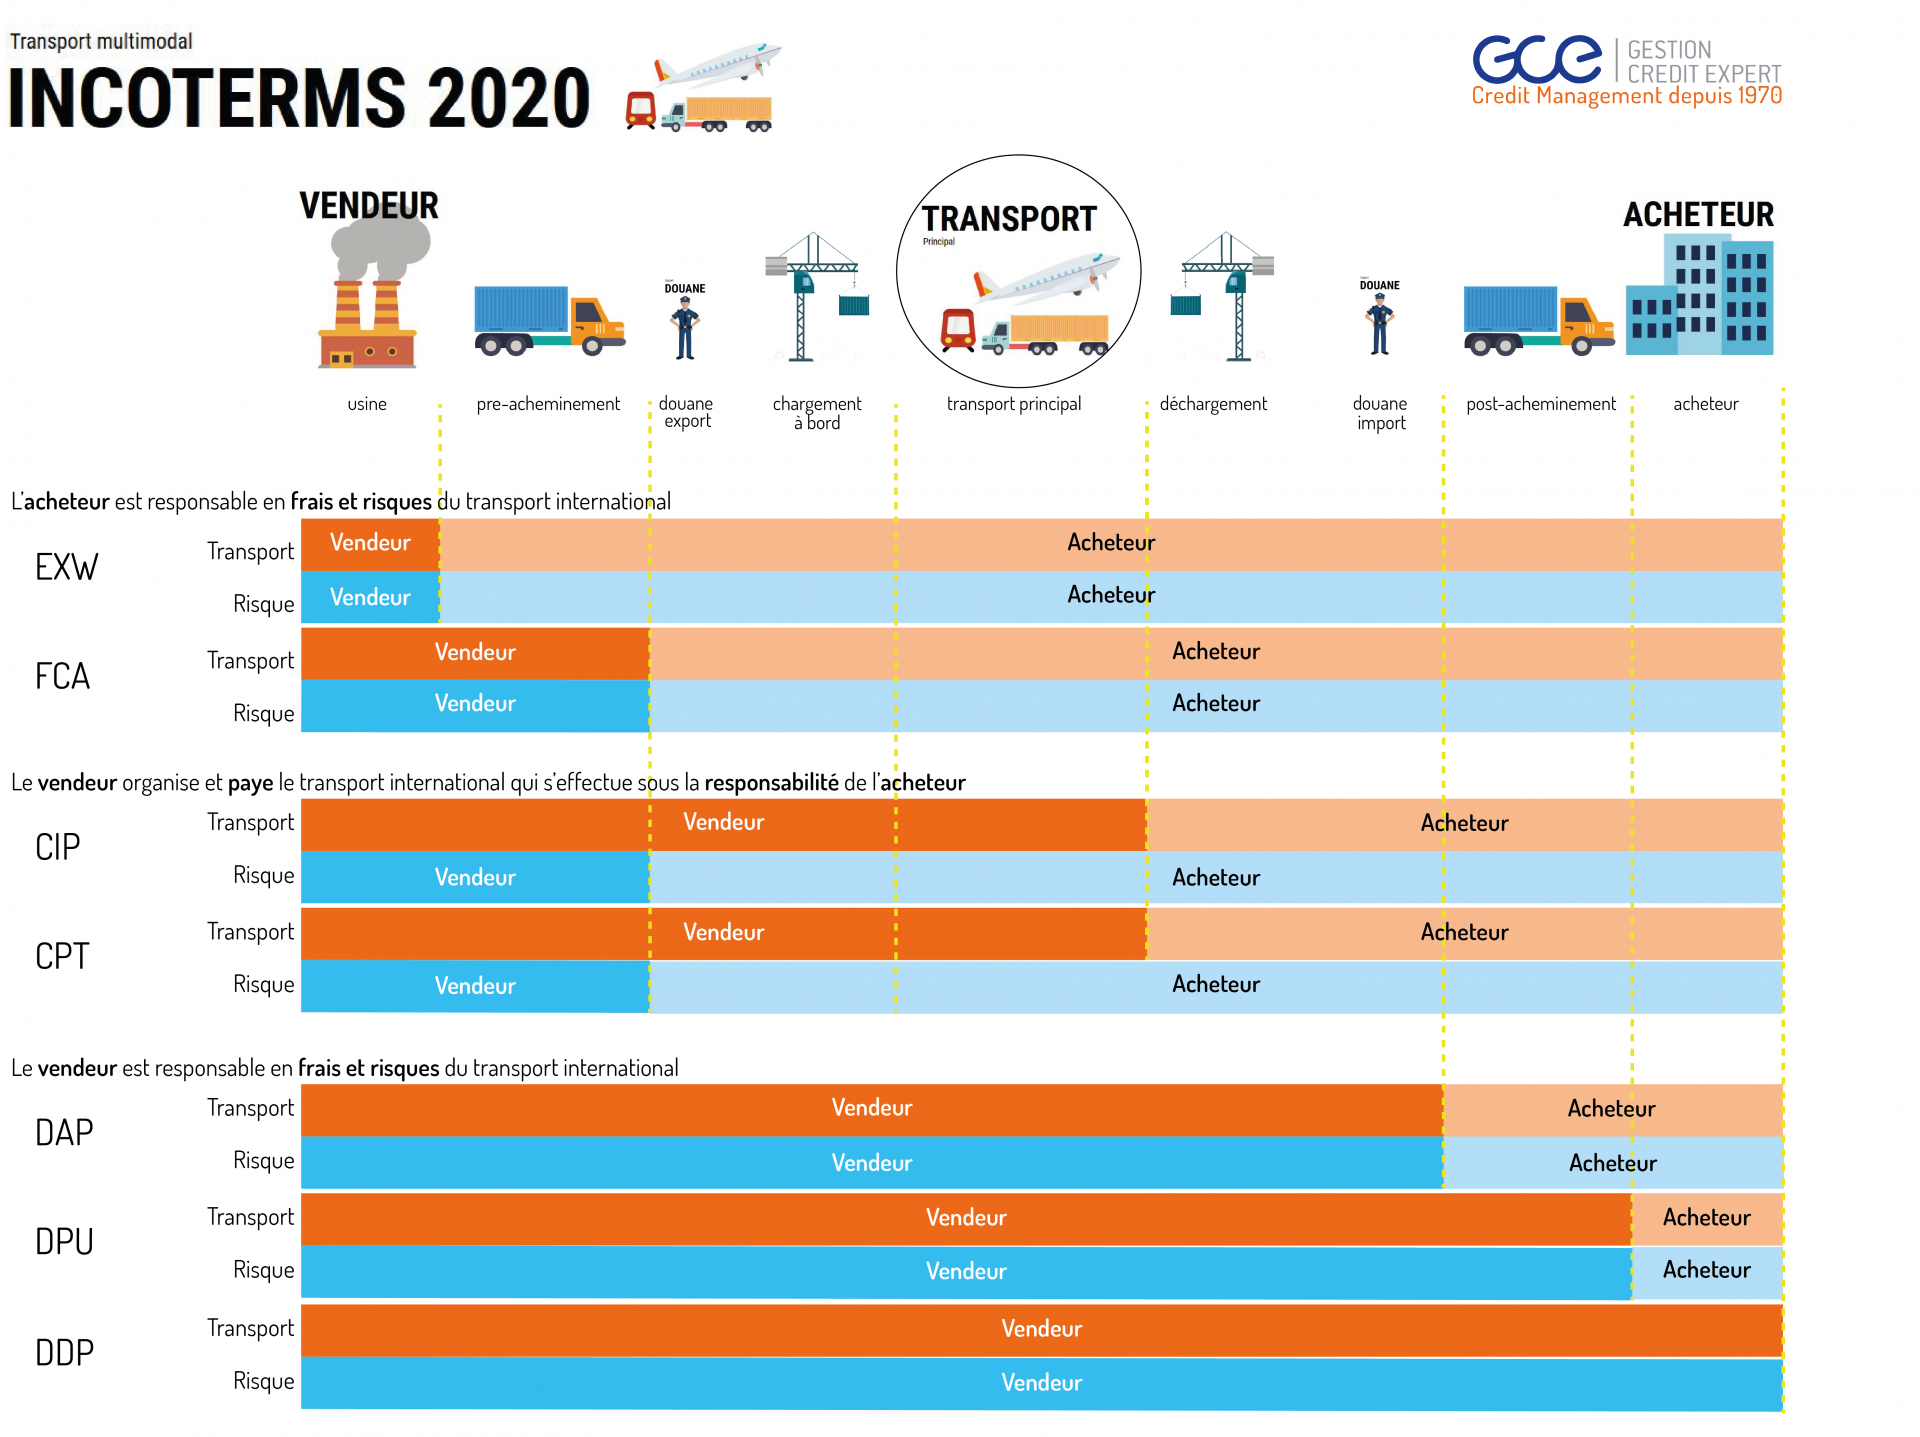 Incoterms 2020, transport multimodal I GCE